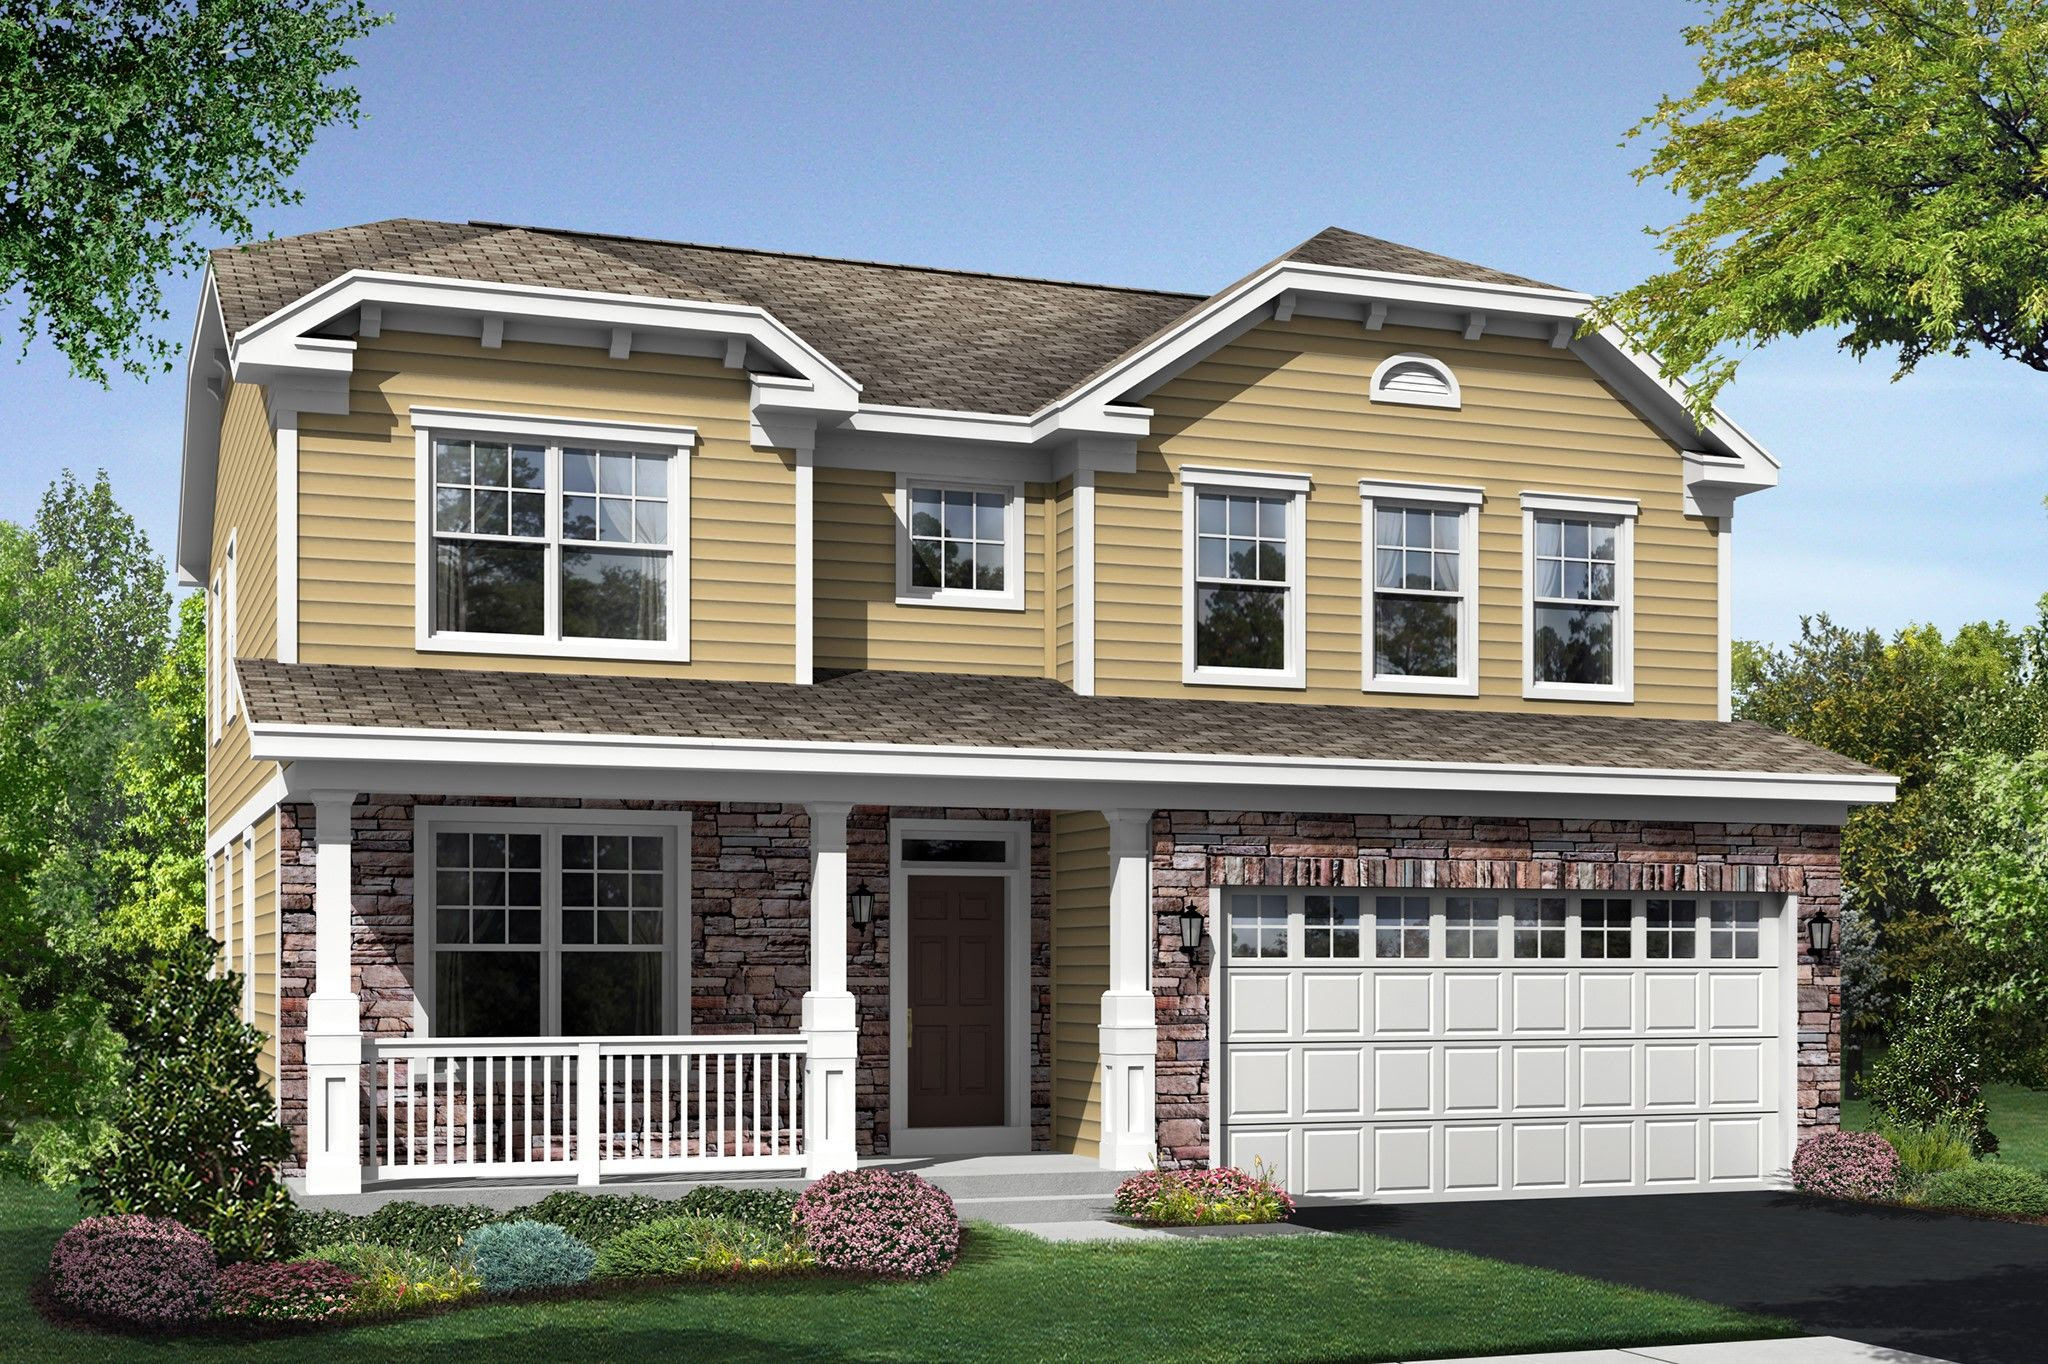 Plainfield homes for sale  Homes for sale in Plainfield IL  HomeGain